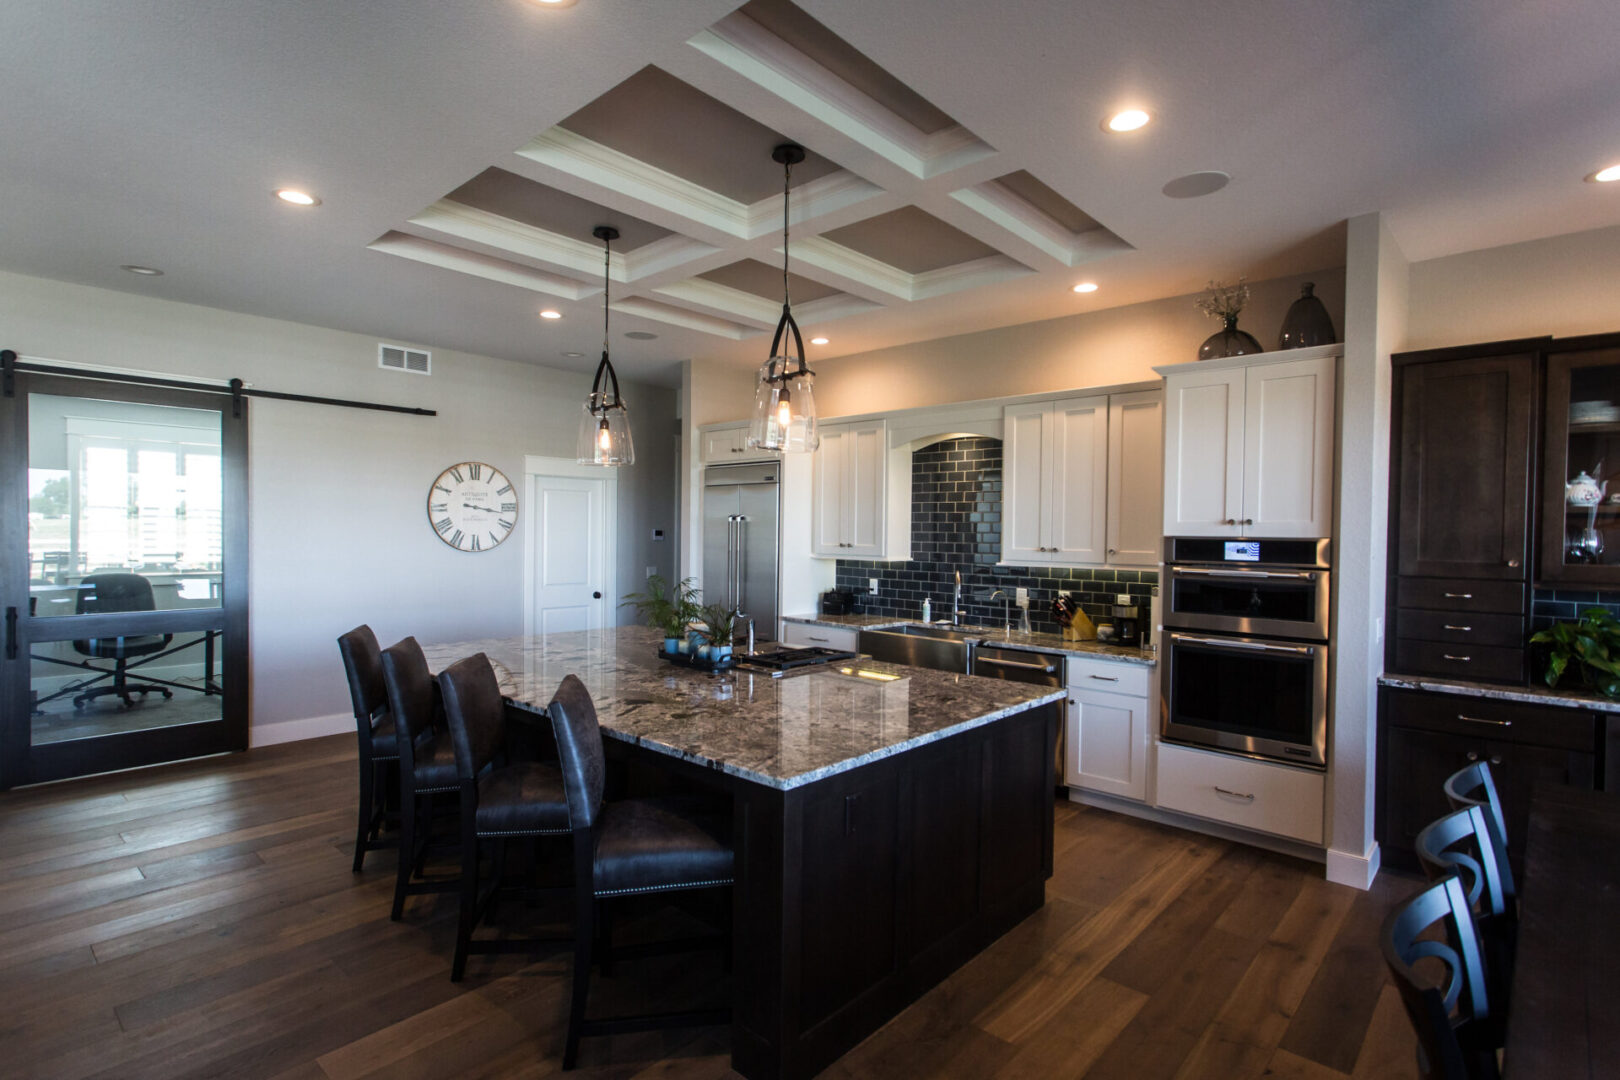 modern kitchen with marble countertop and chairs